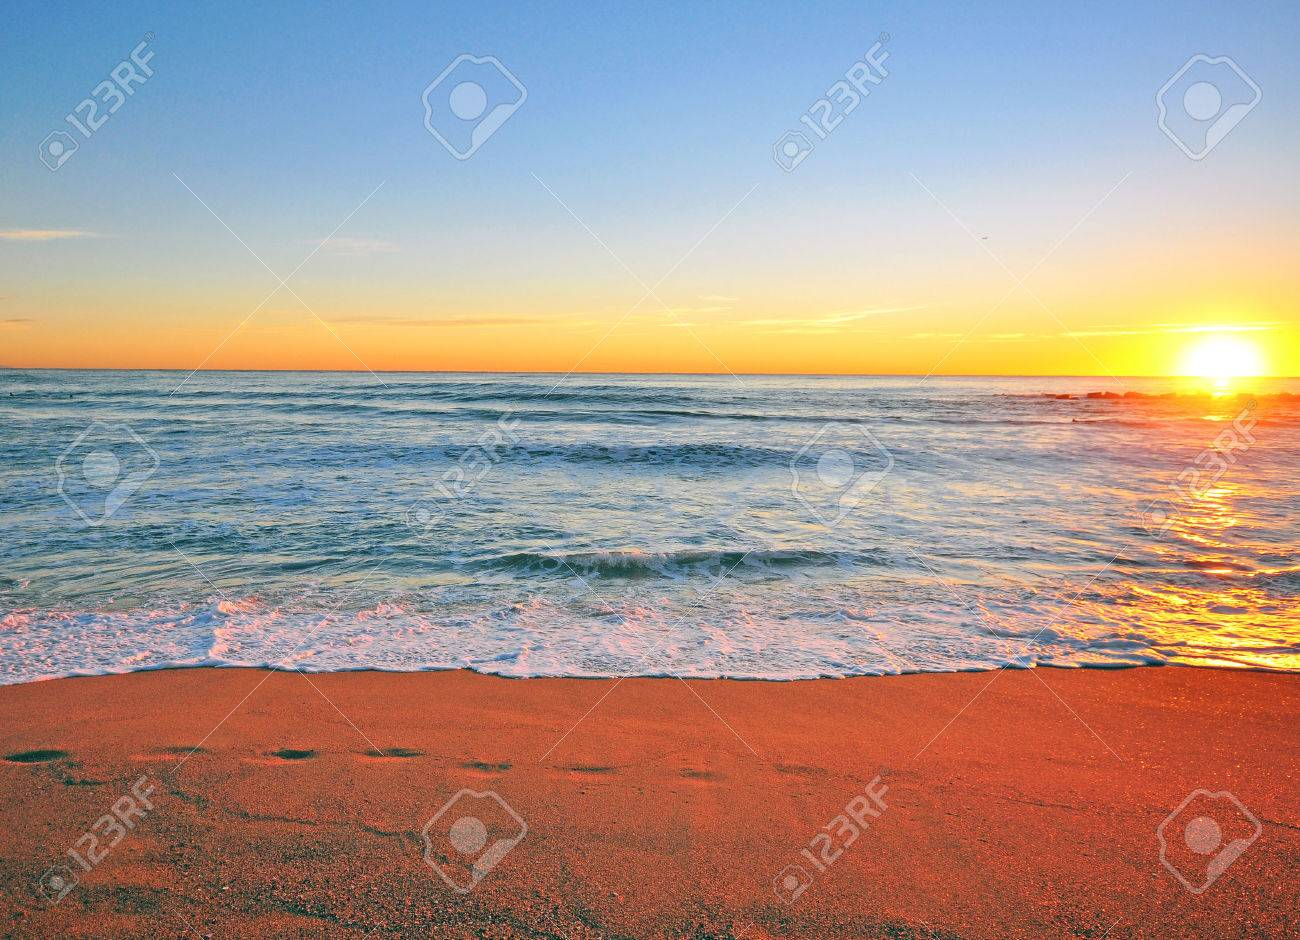 beach scene background stock photo picture and royalty free image